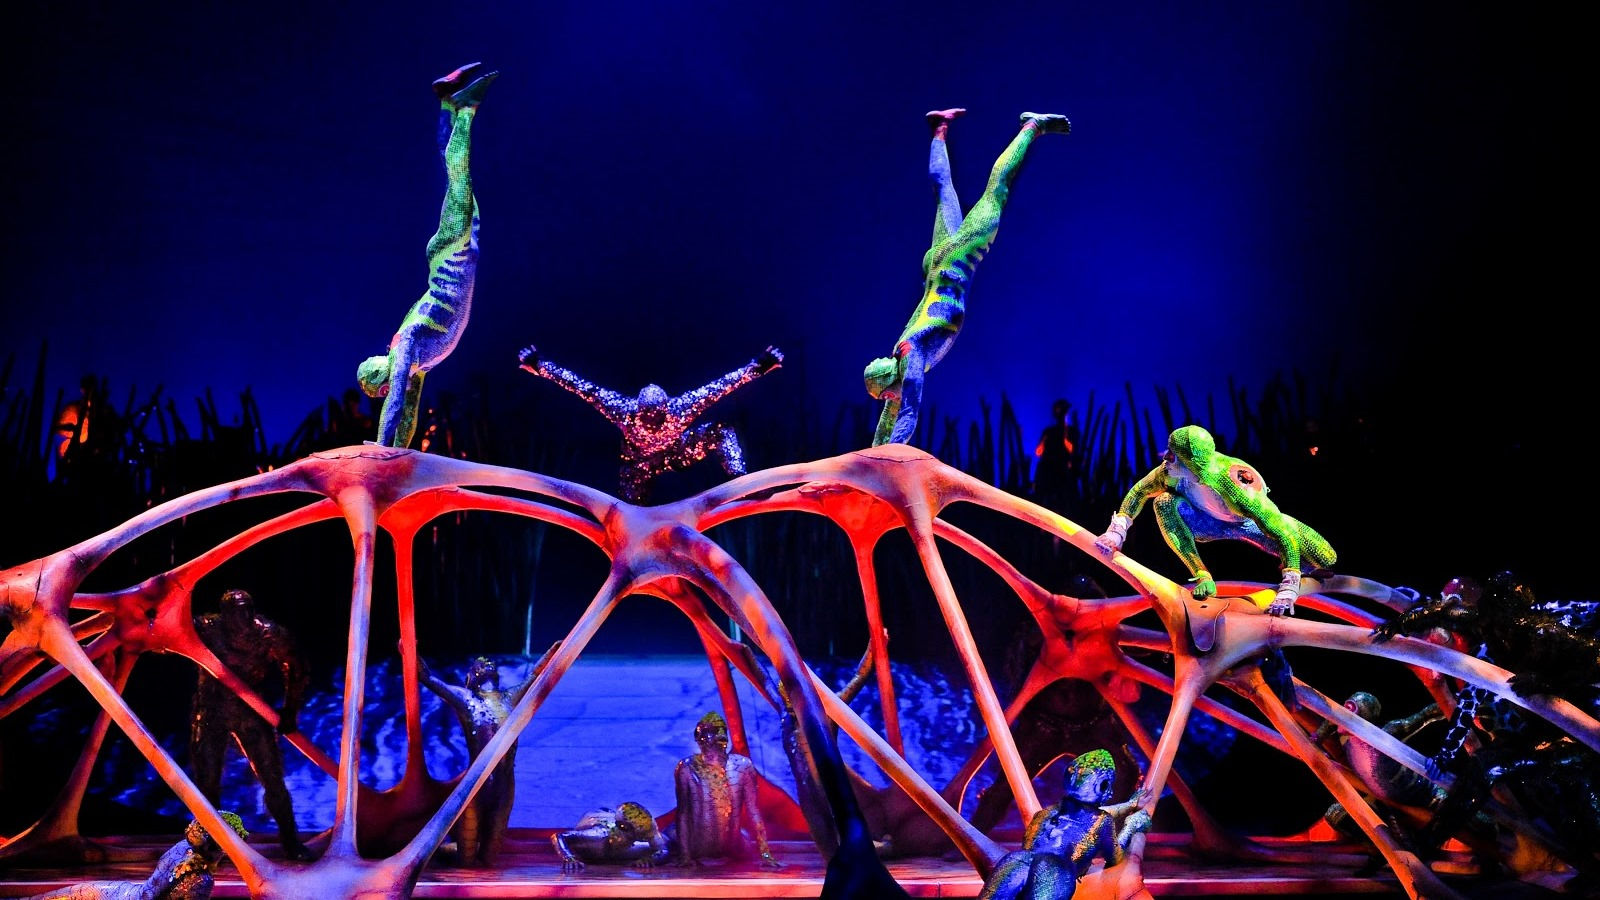 Cirque du Soleil® - Sheraton Vistana Villages Resort Villas, I-Drive/Orlando